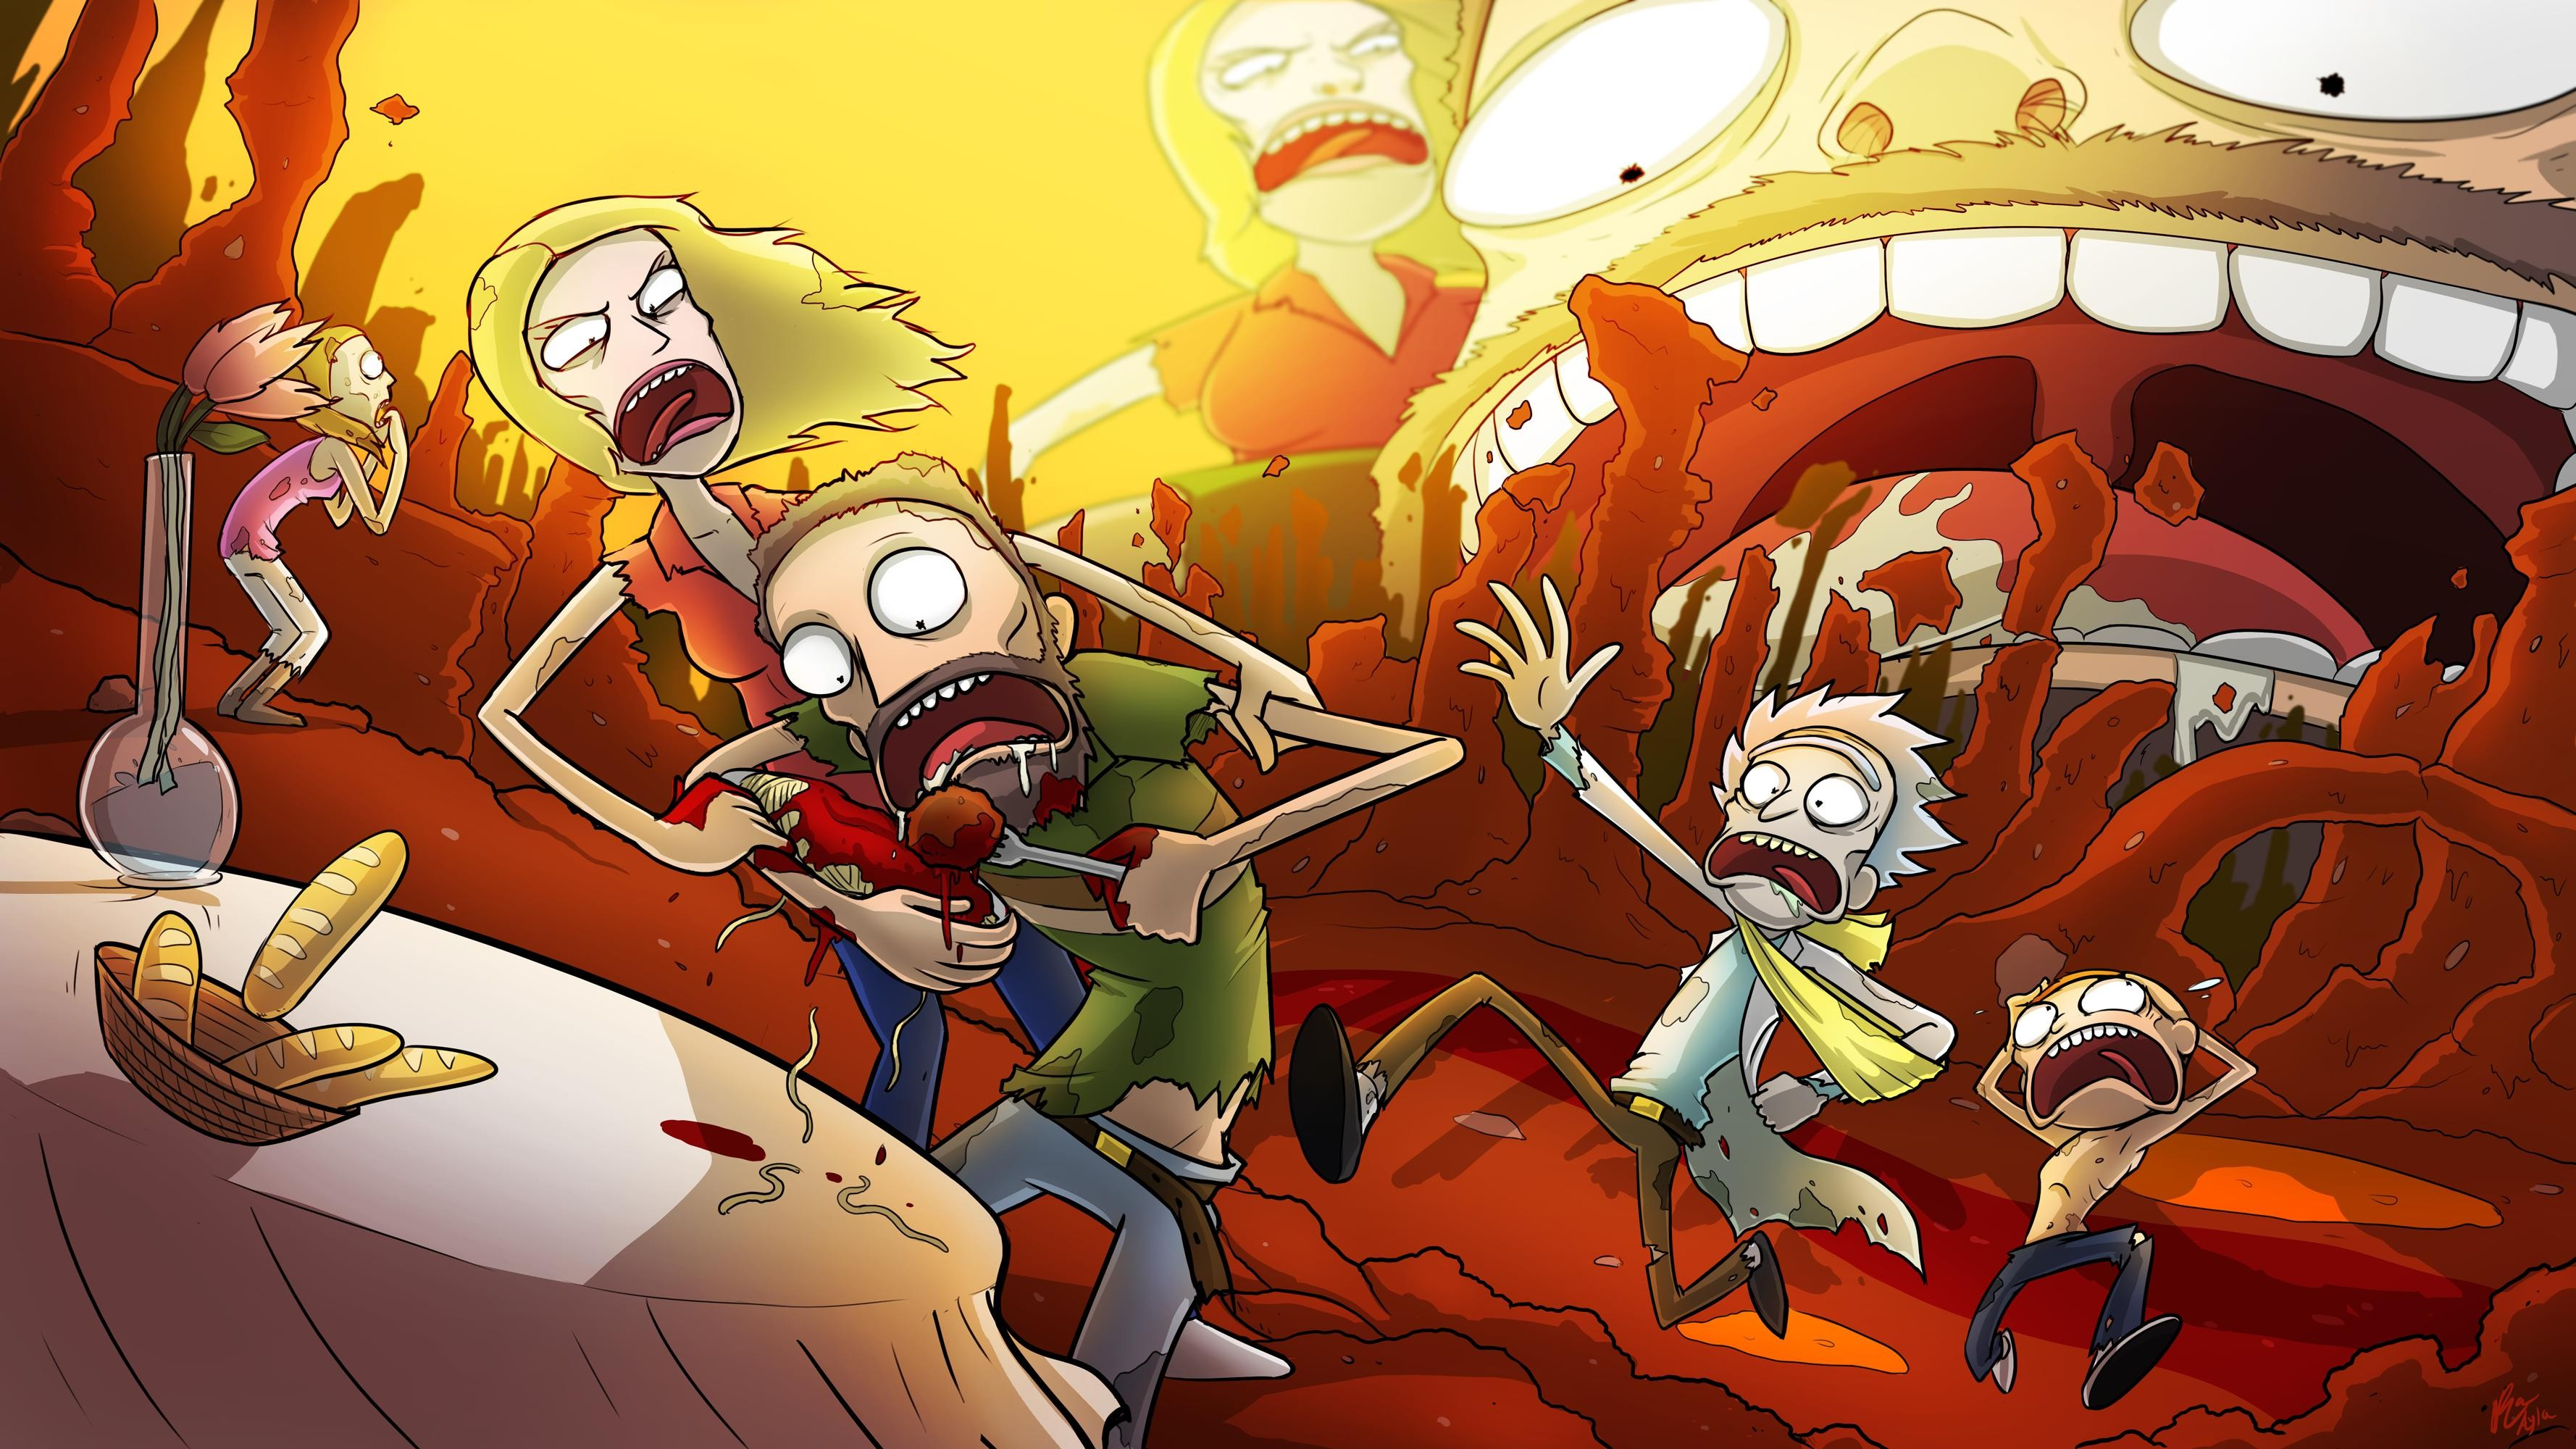 33 rick and morty wallpapers download free cool high - Evil morty wallpaper 4k ...